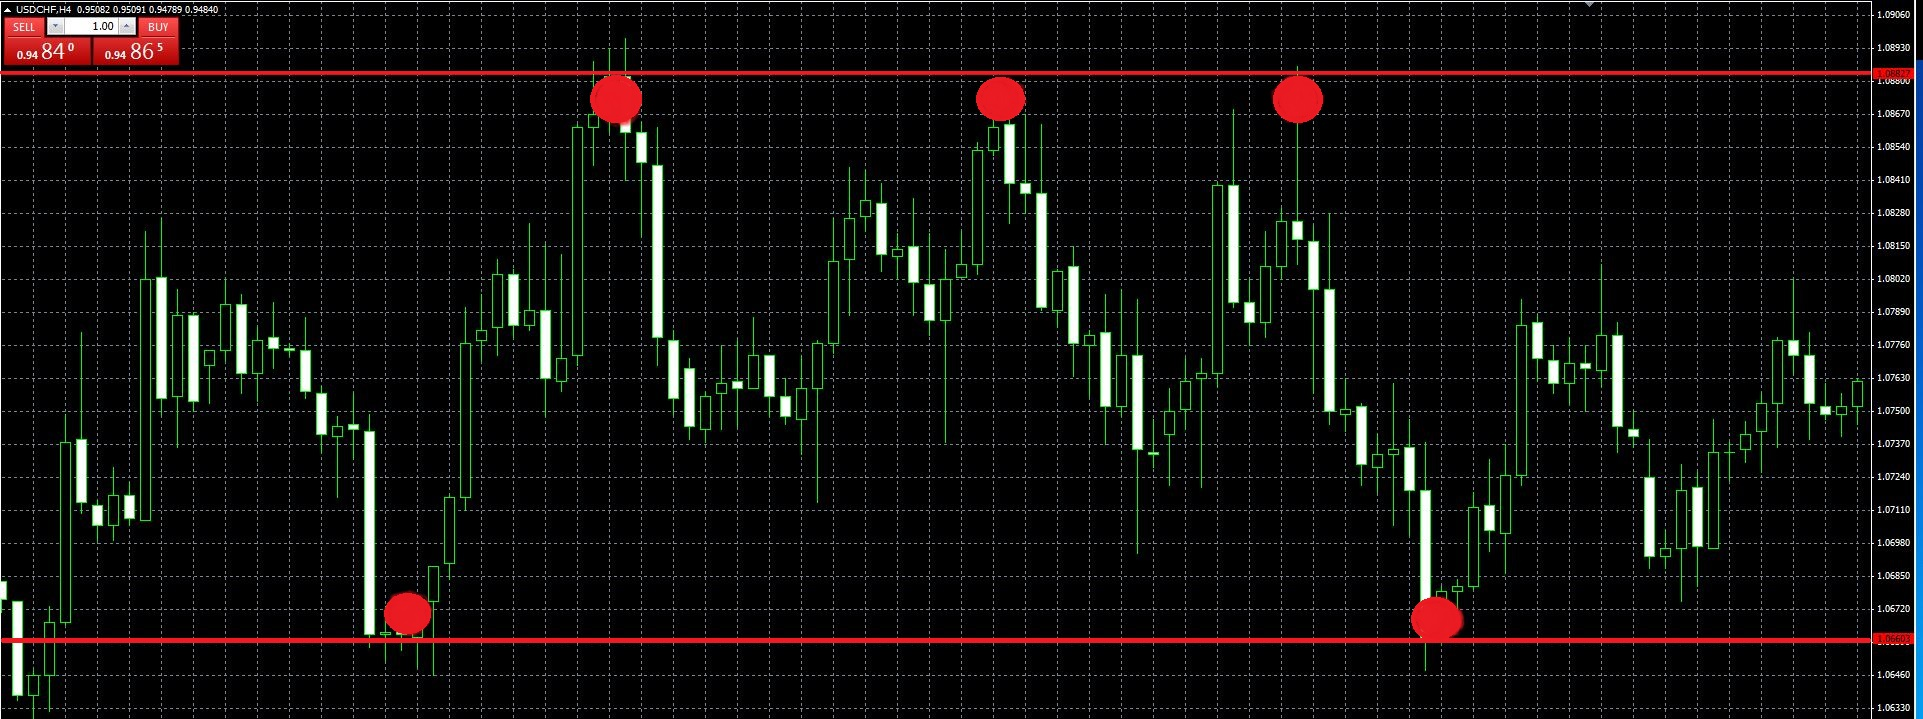 5 minute binary options trading strategy pdf